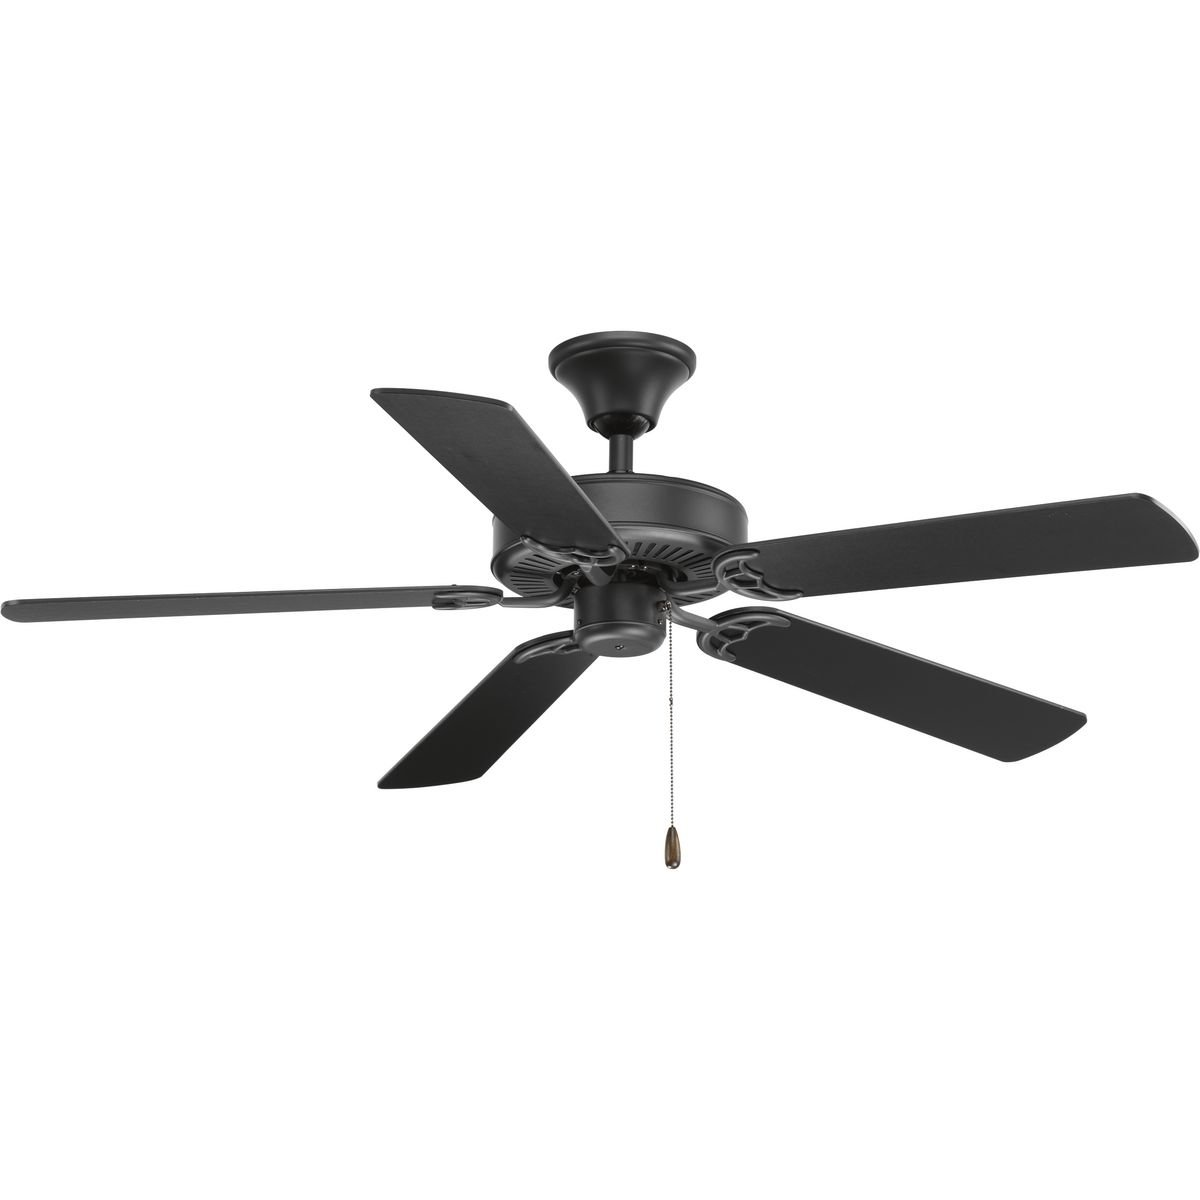 Progress Lighting P2501-143 Protruding Mount, 5 Driftwood Matte Black Blades Ceiling fan, Graphite